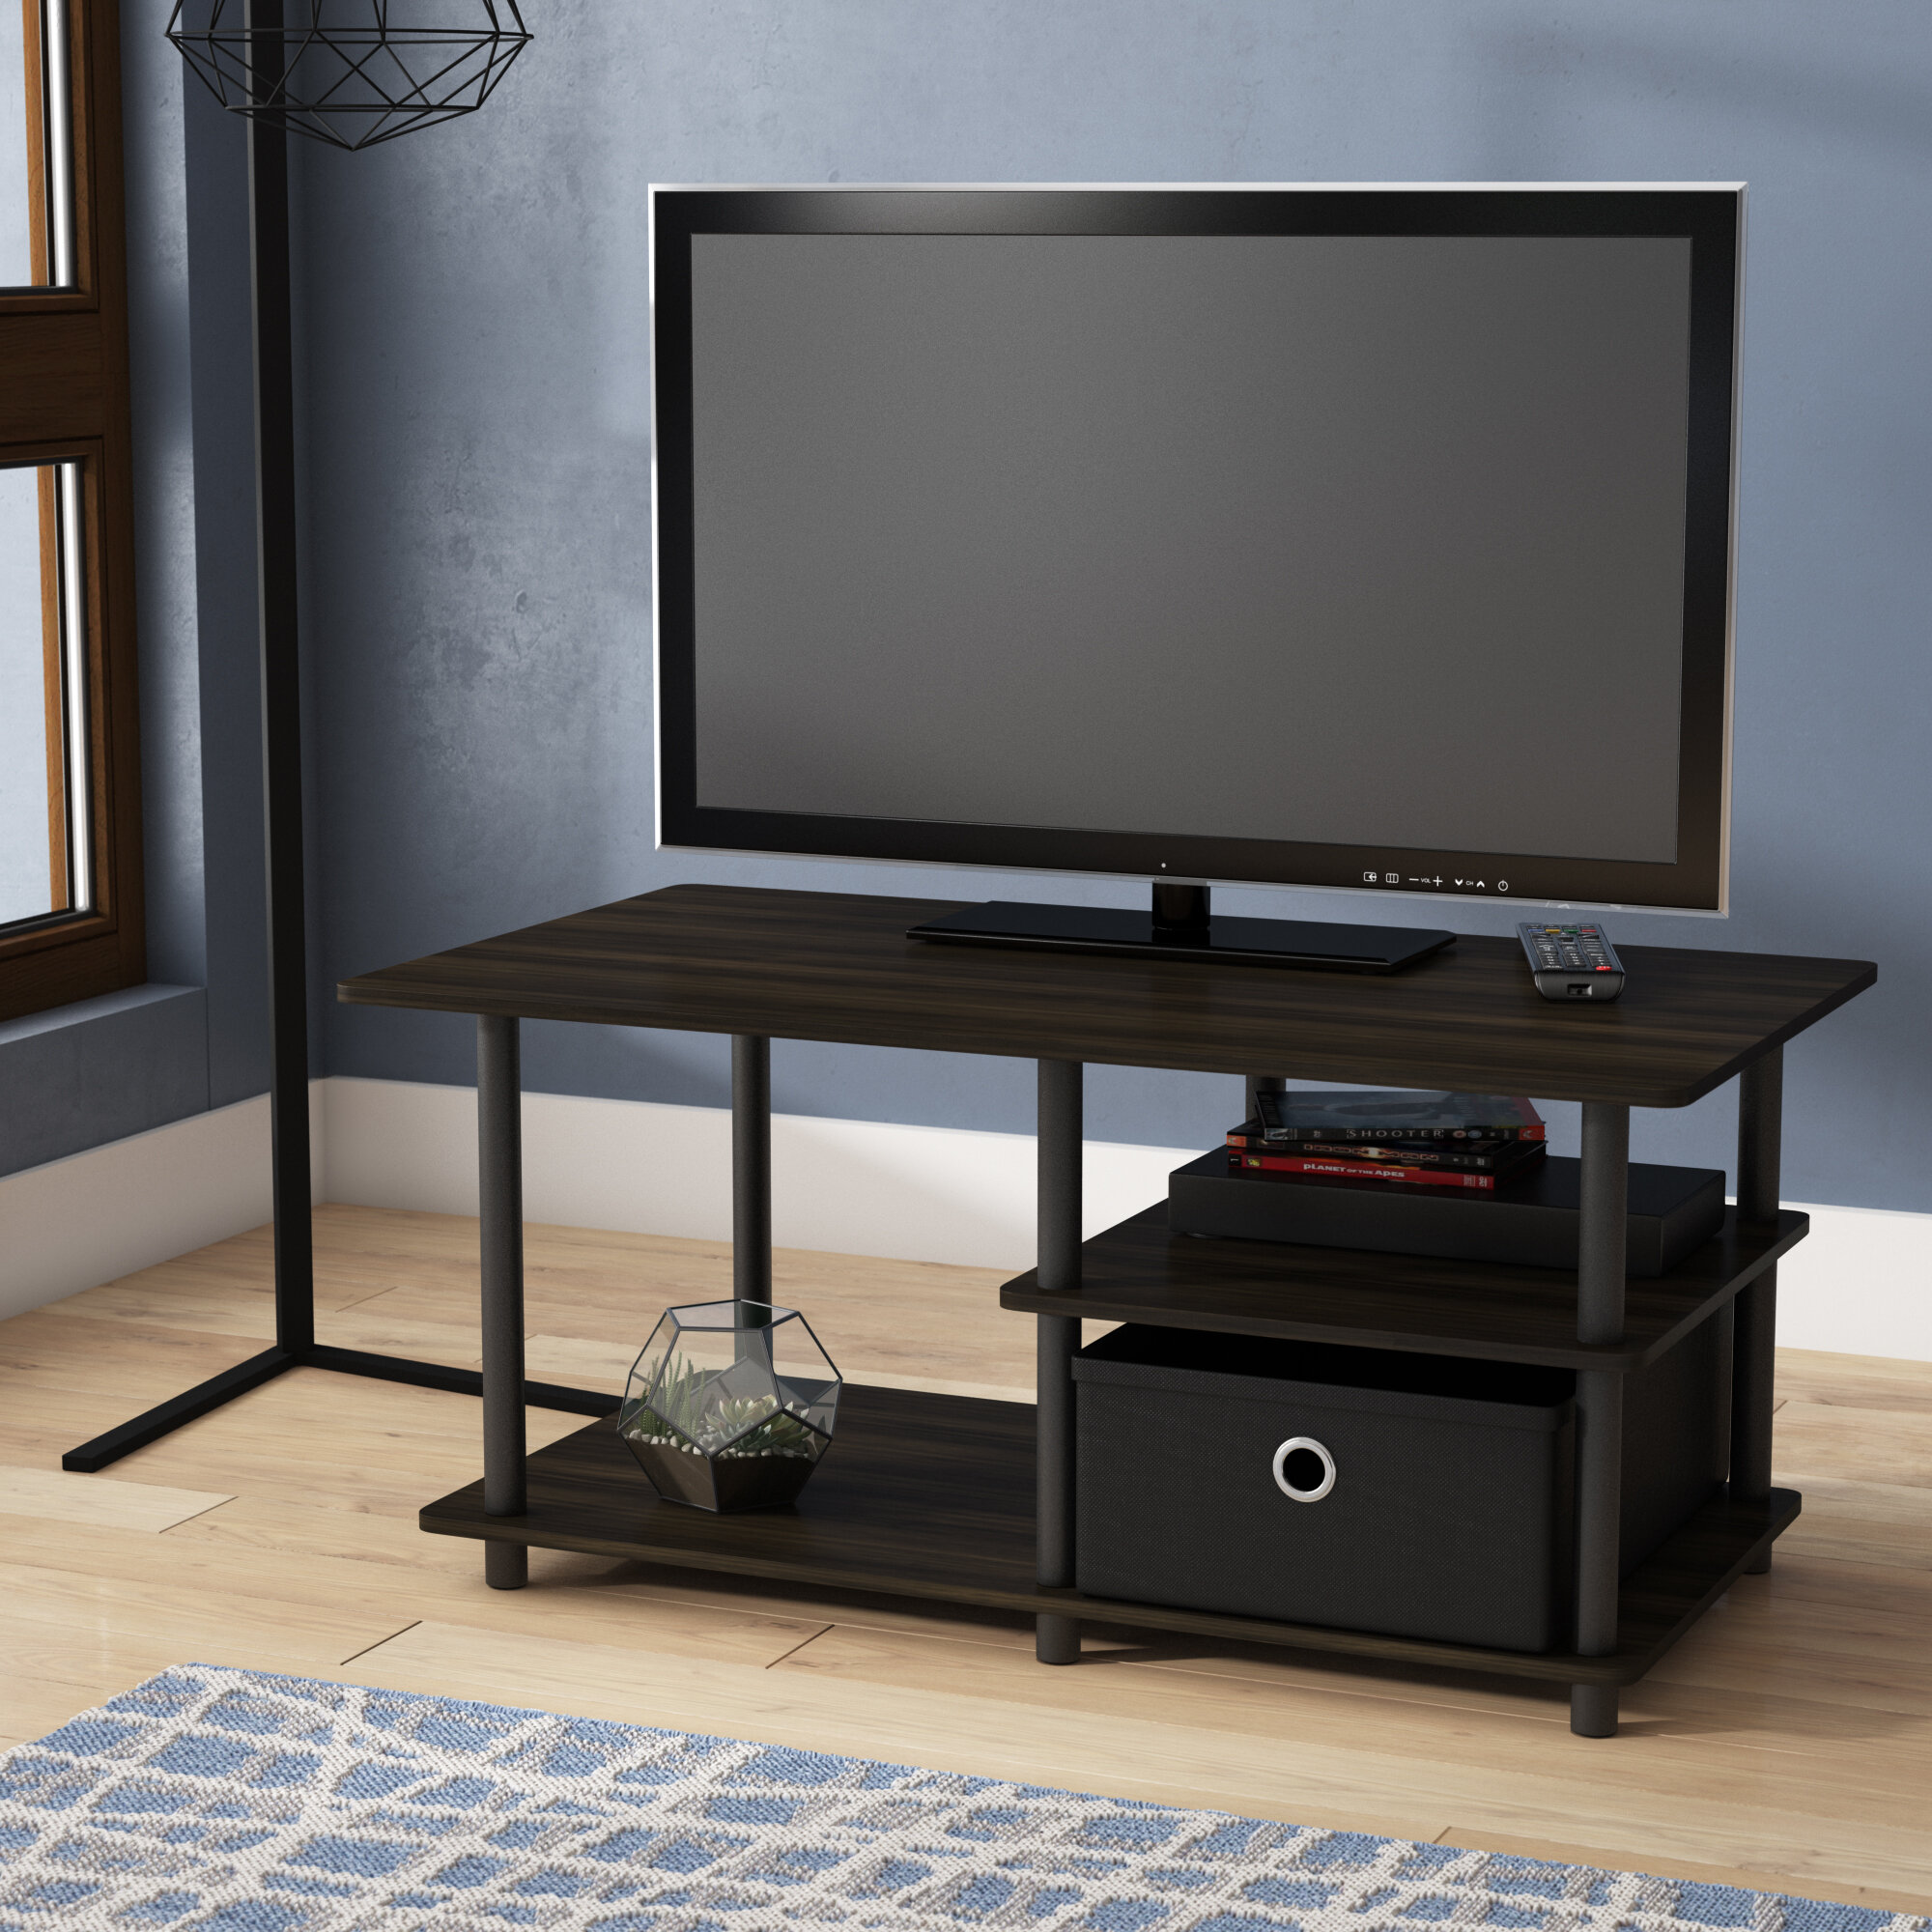 Ebern Designs Ankney Tv Stand For Tvs Up To 40 Reviews Wayfair